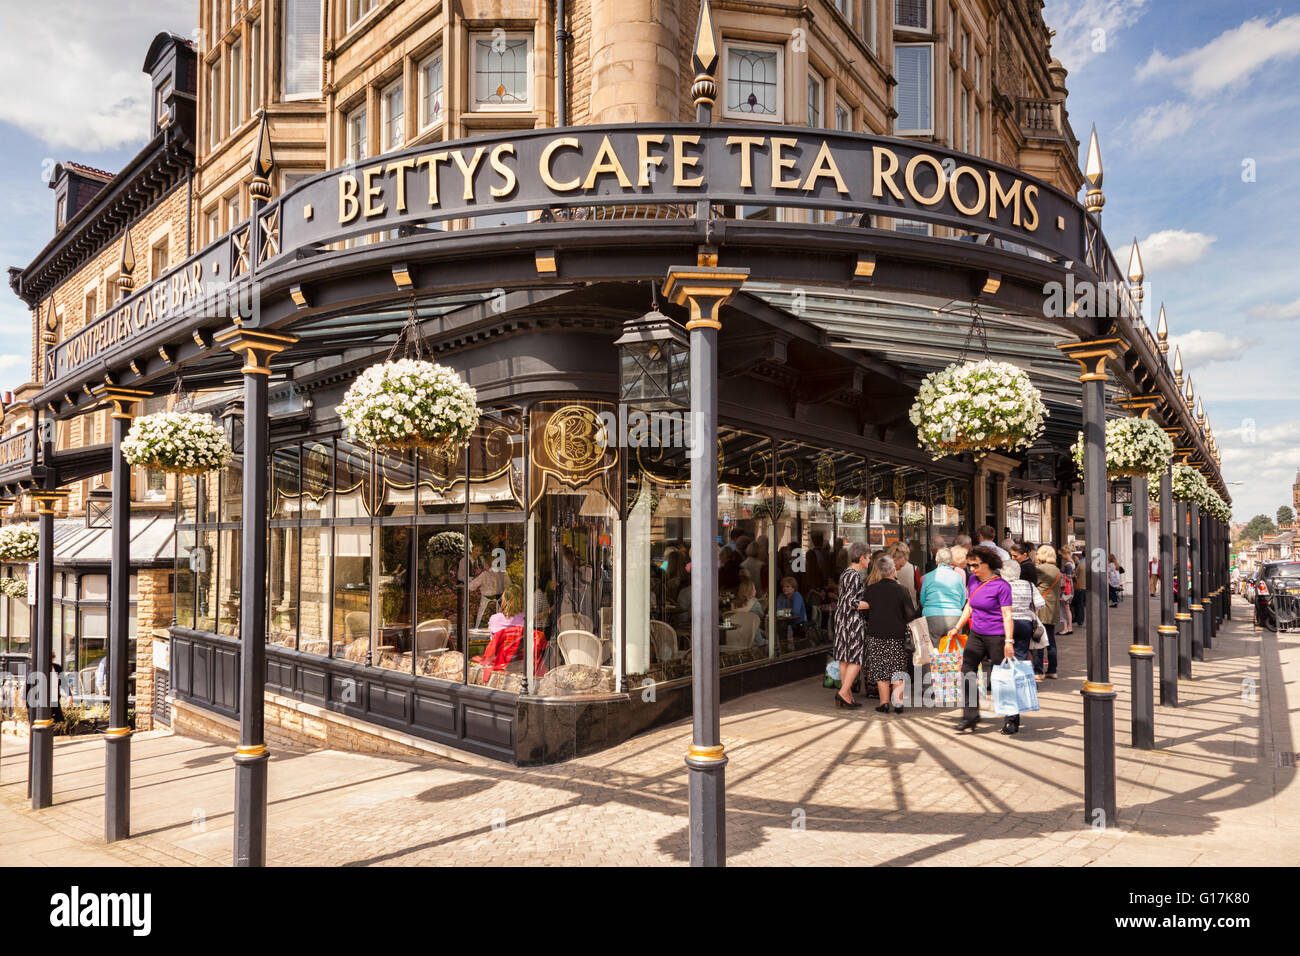 Bettys Cafe Tea Rooms, Harrogate, North Yorkshire, England, UK, and a queue waiting outside to go in. - Stock Image